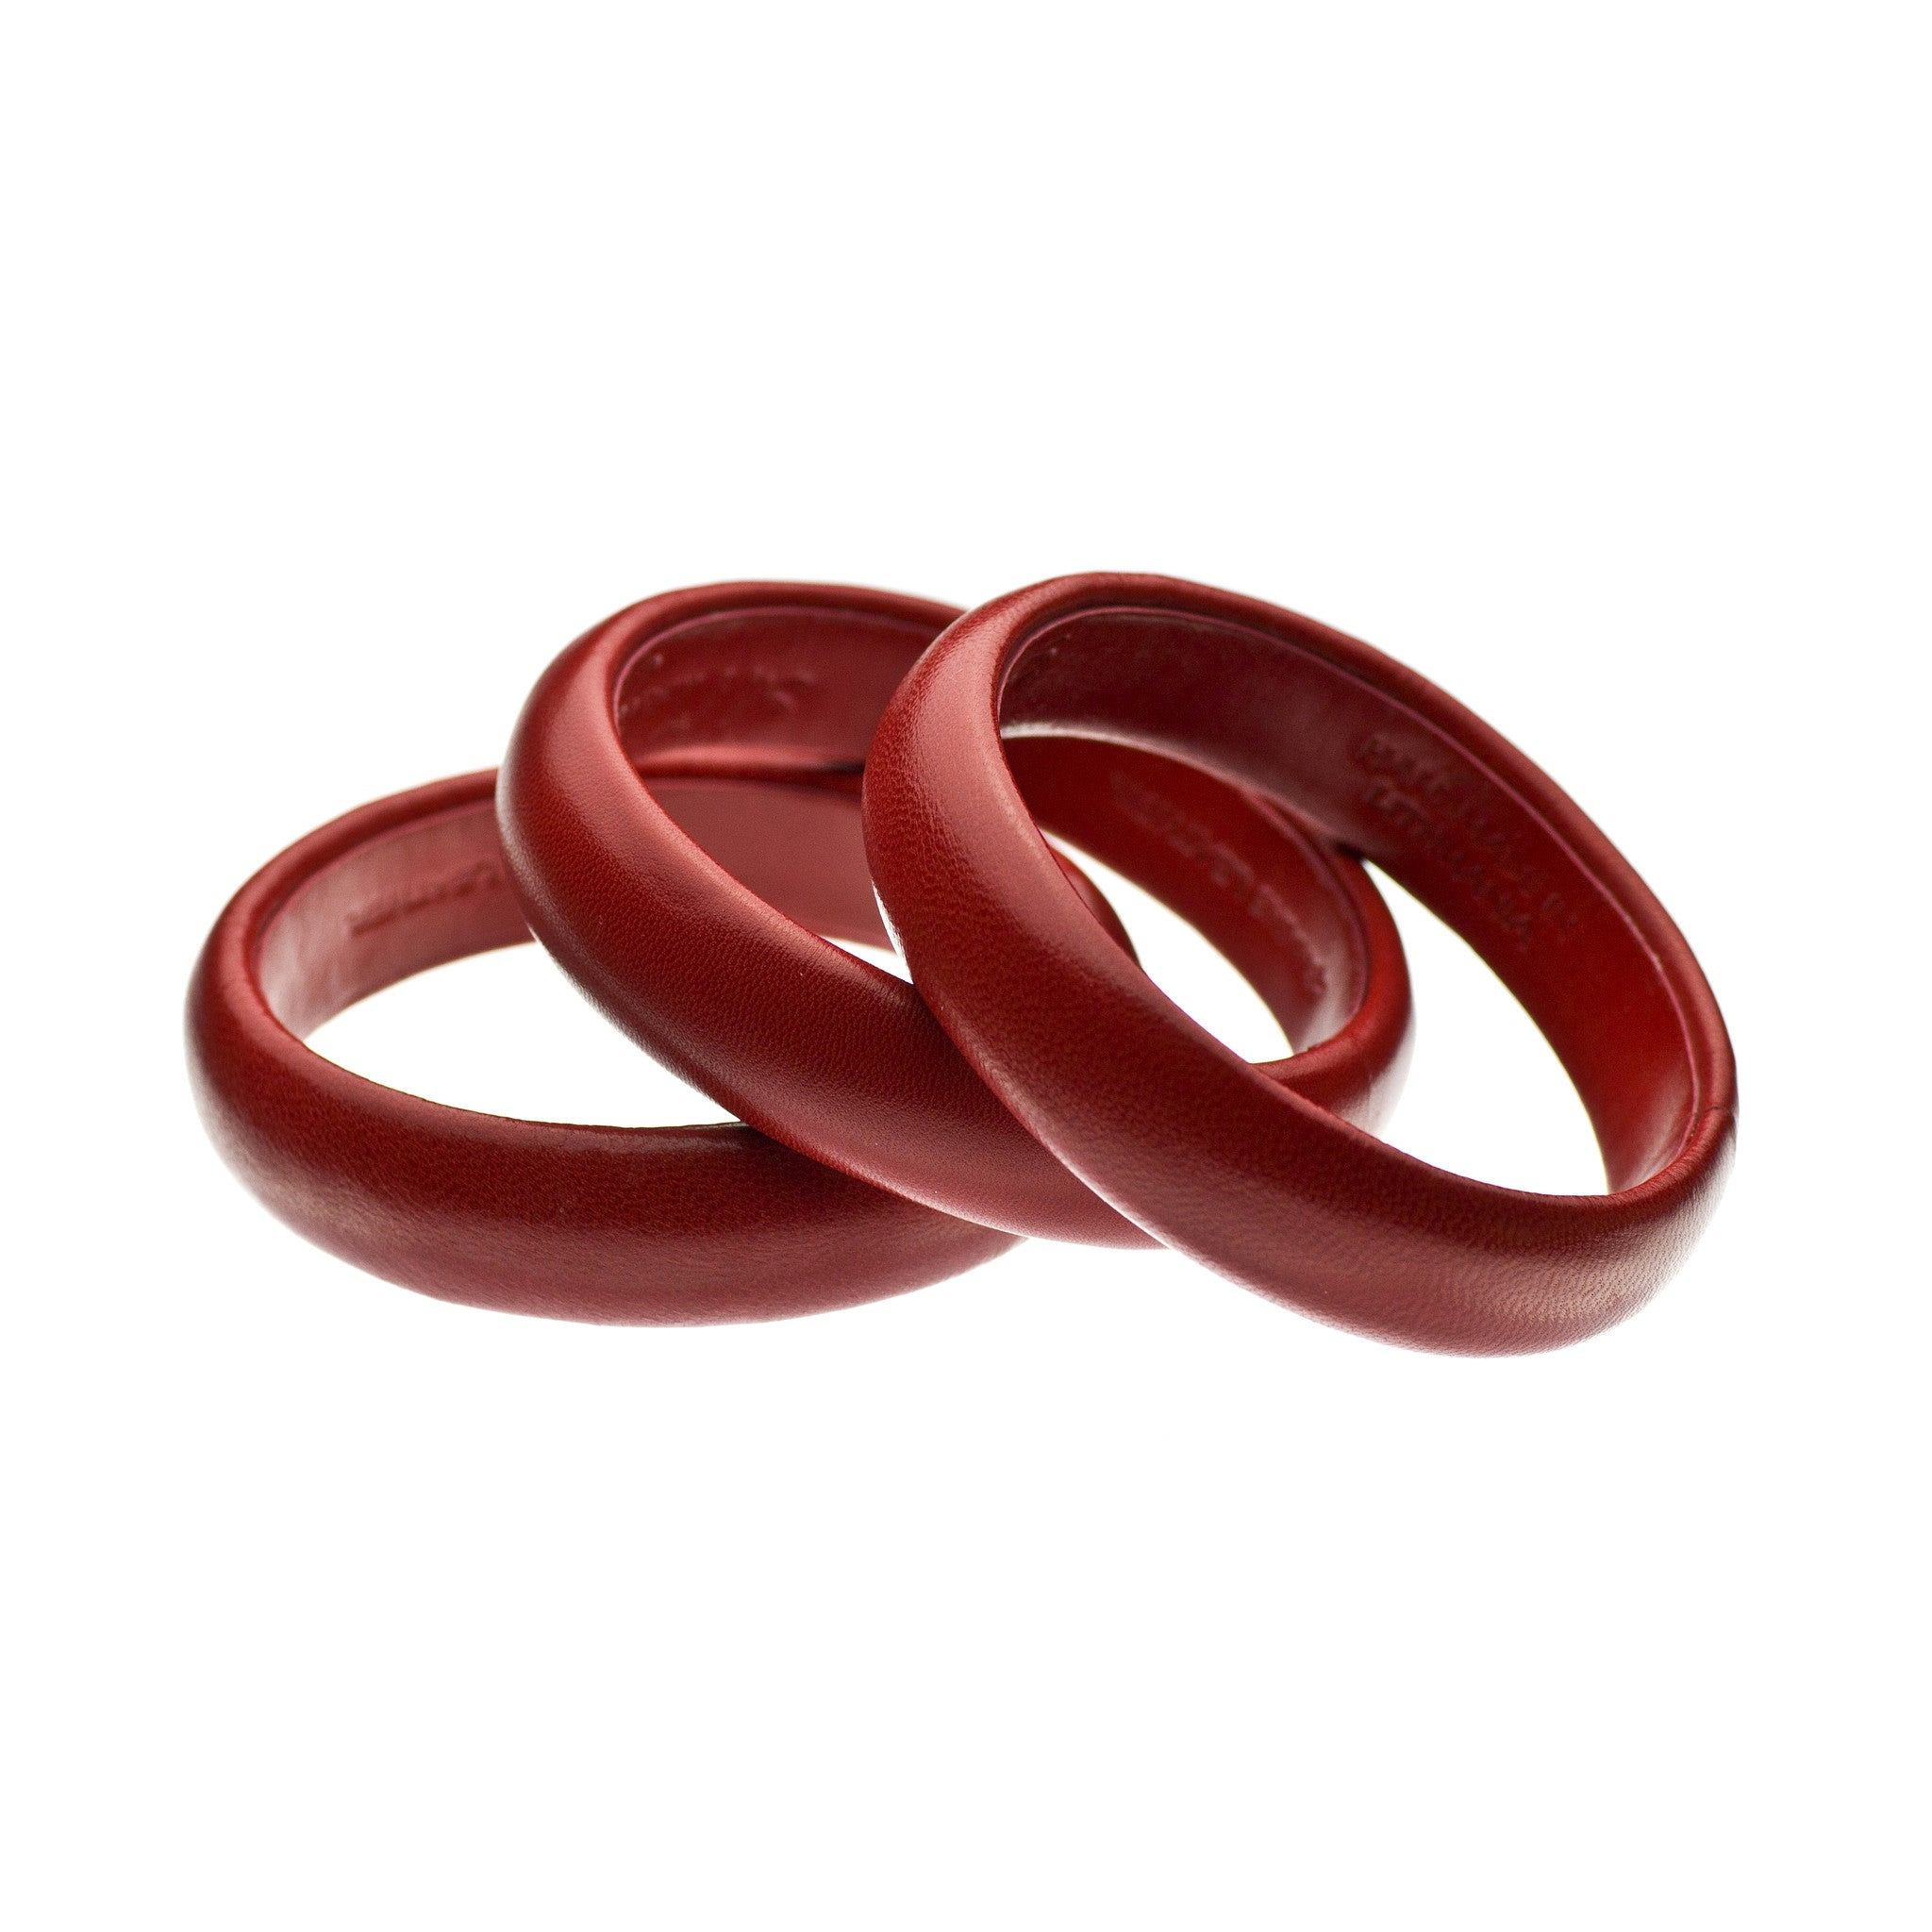 The Aria Bangle ~ Rich Cherry Red Kidskin Leather Bangle Bracelet